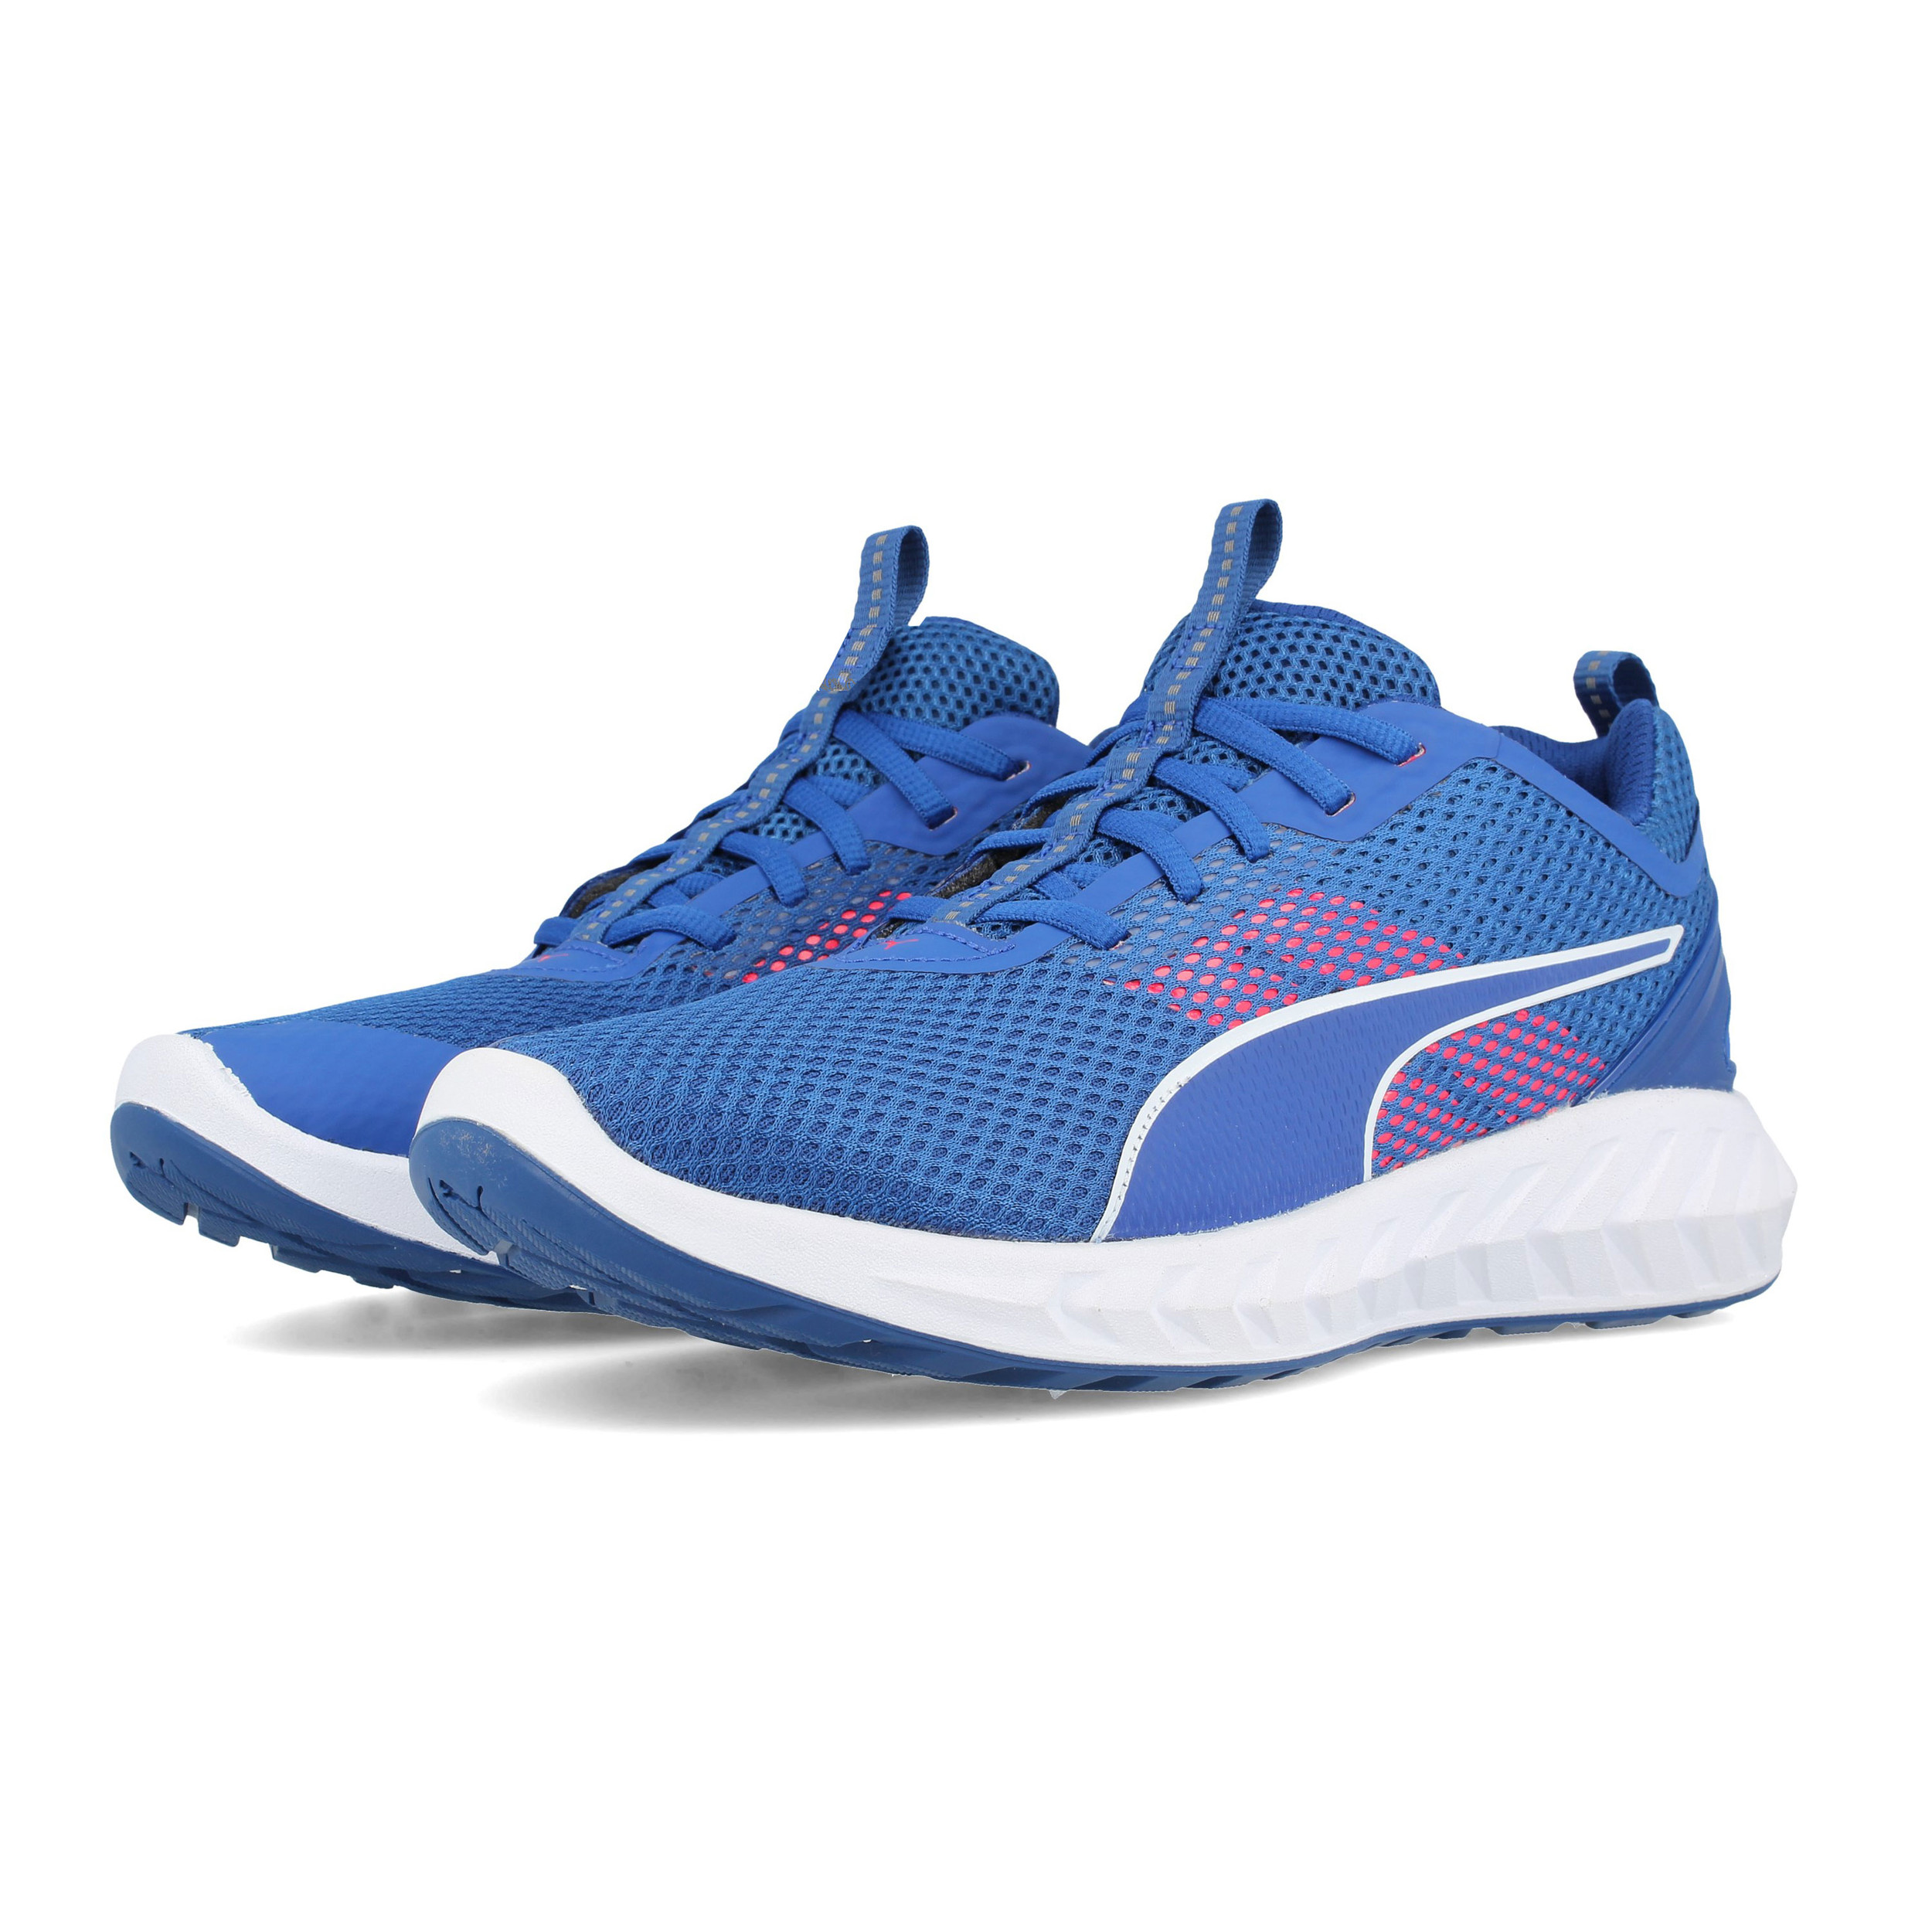 Puma Mens IGNITE Ultimate 2 Running Shoes Trainers Sneakers Blue Sports 5d640715e